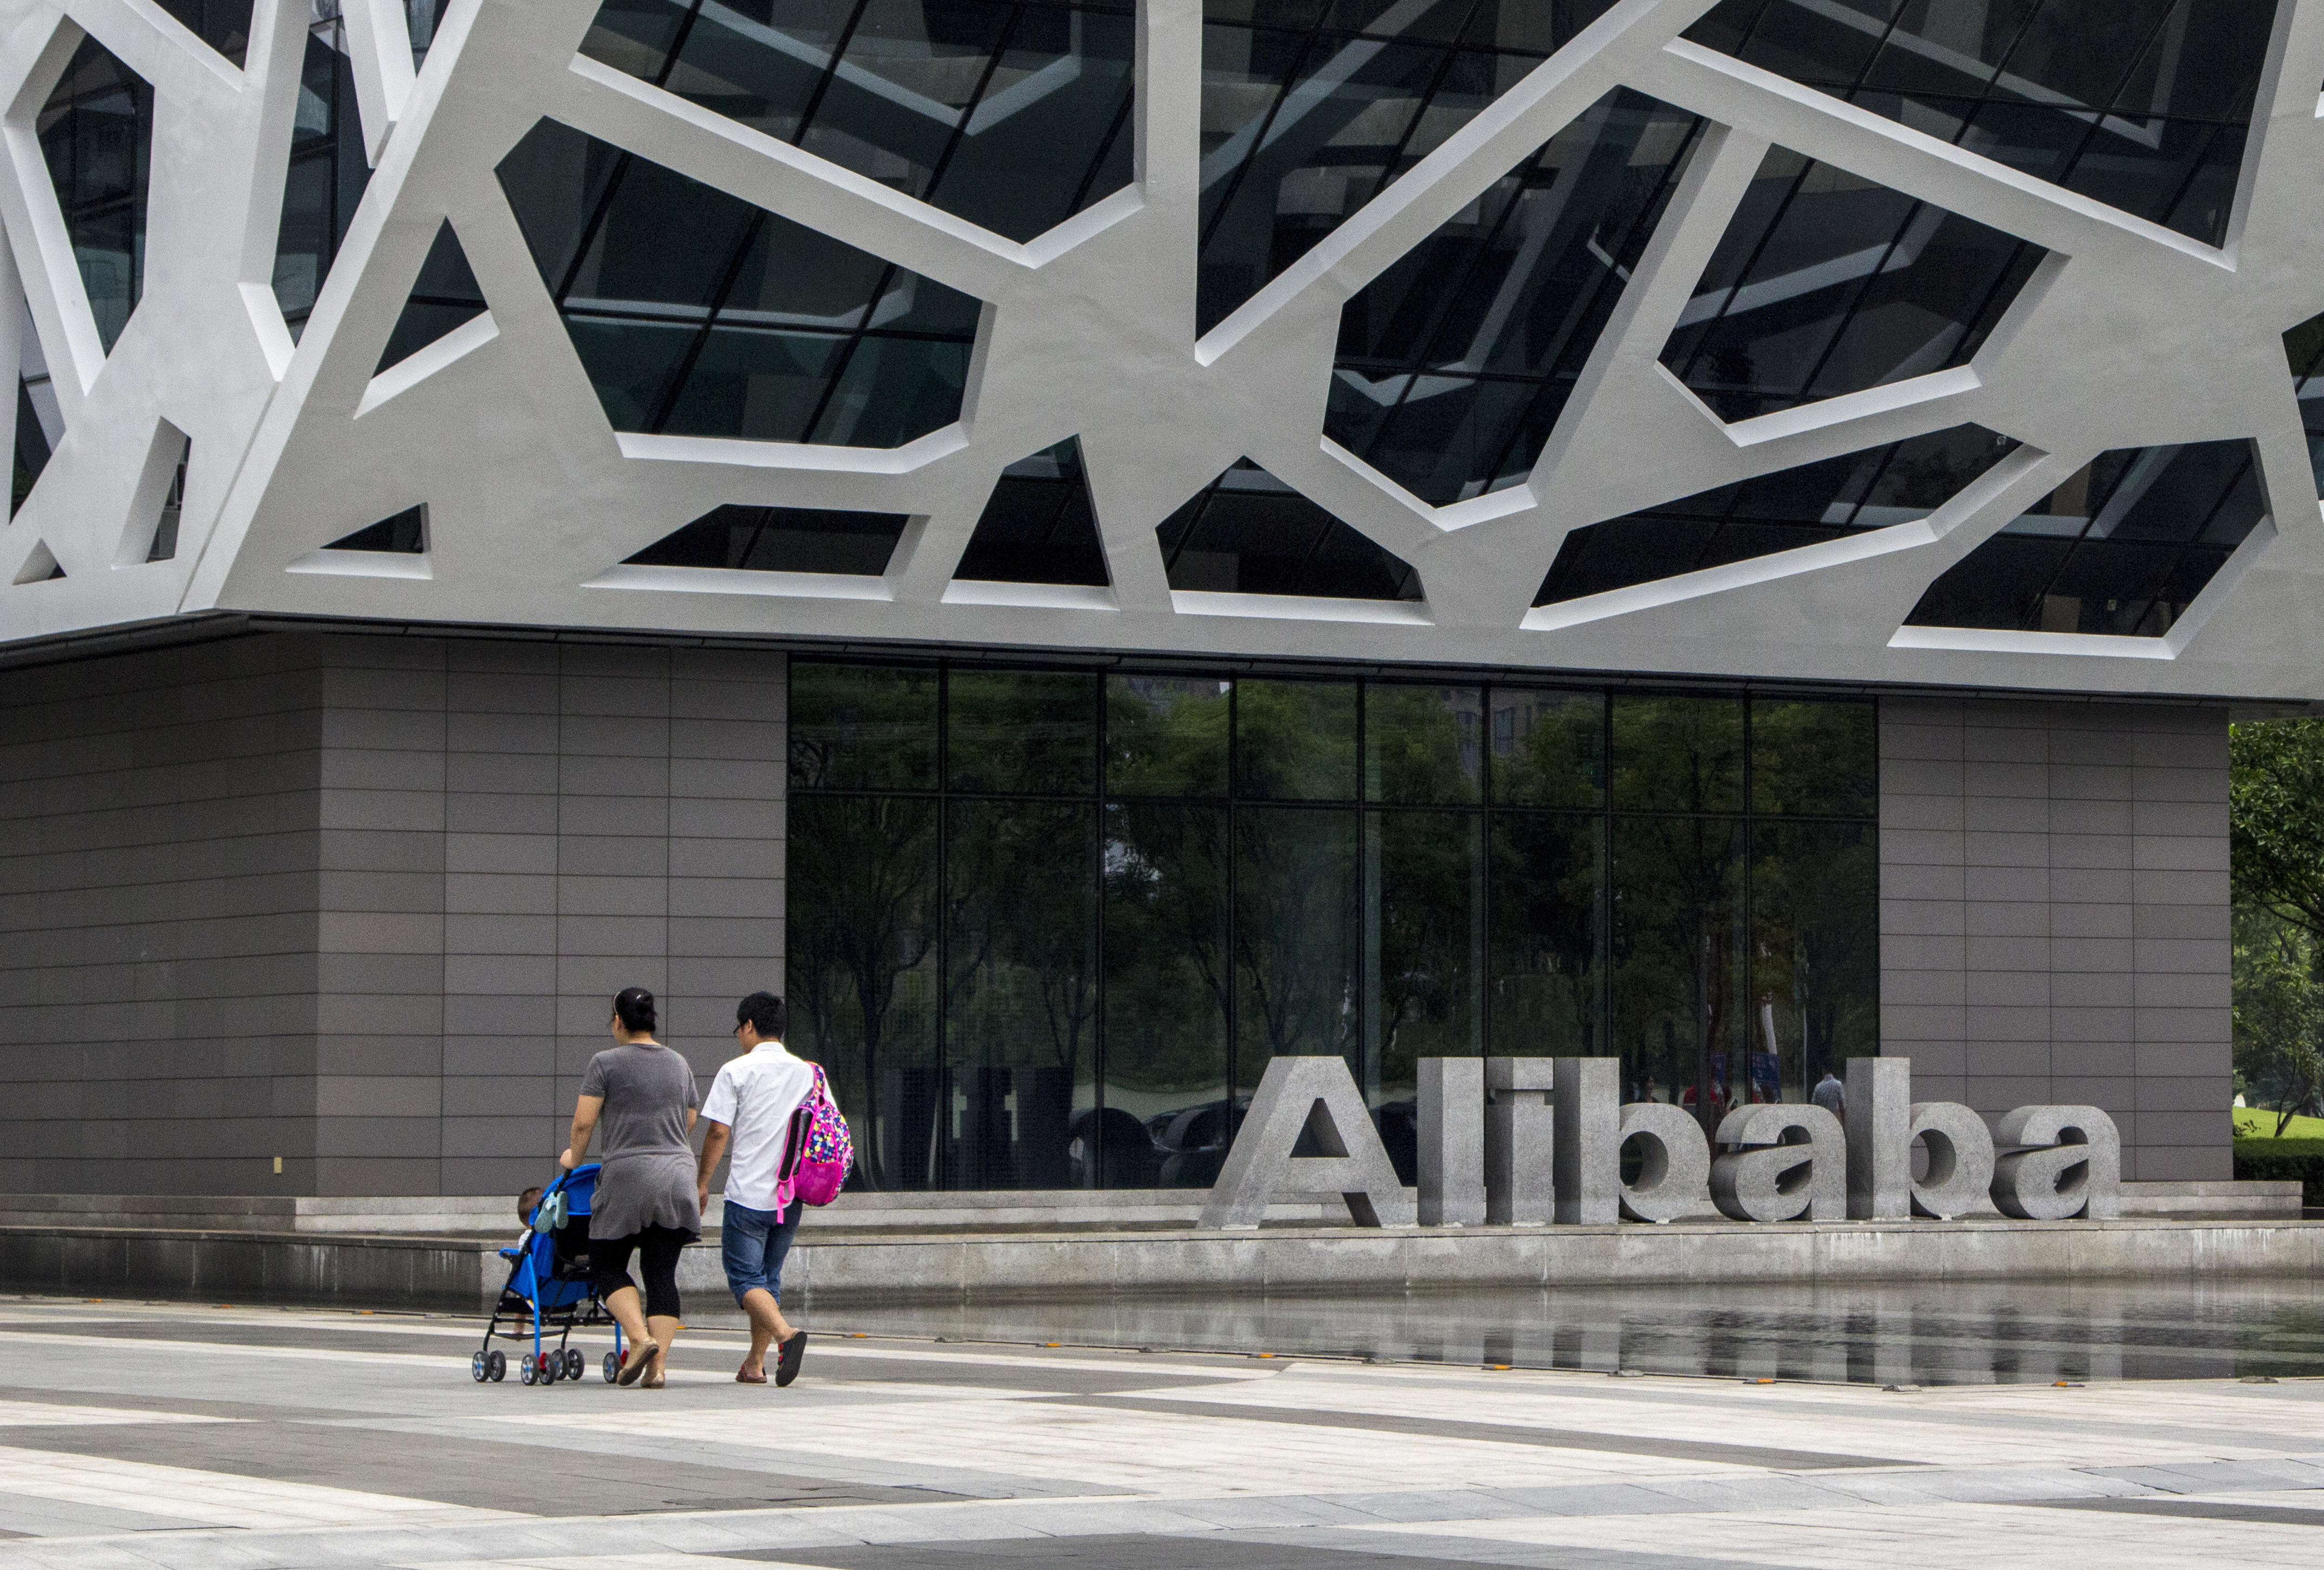 Logo and headquarter building of Alibaba Group in Hangzhou